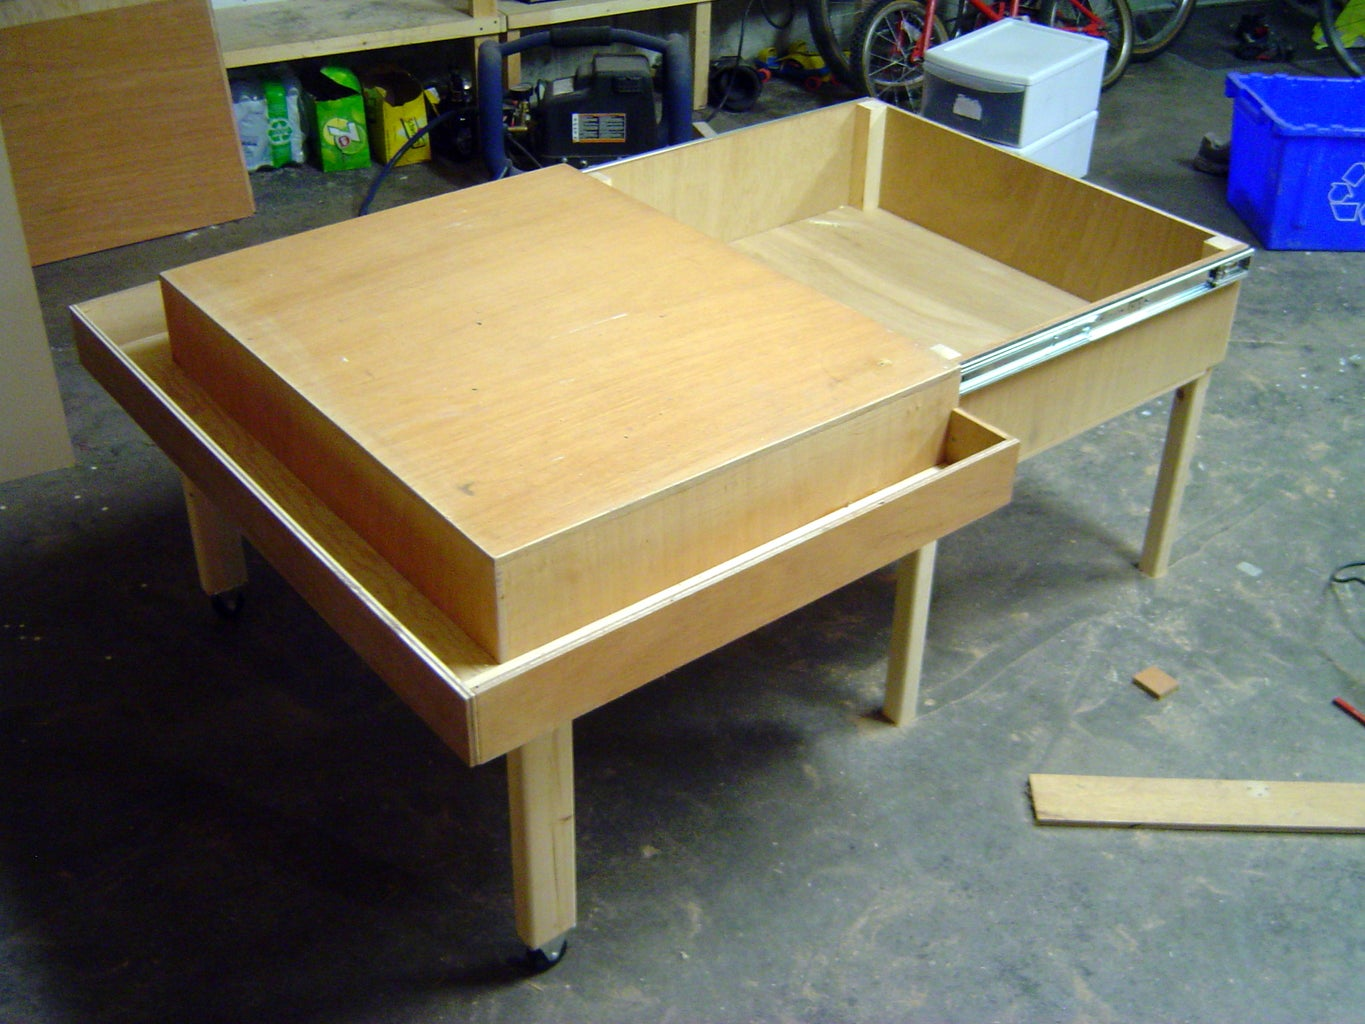 Join Tabletop and Storage Box, and Add Wheeled Legs